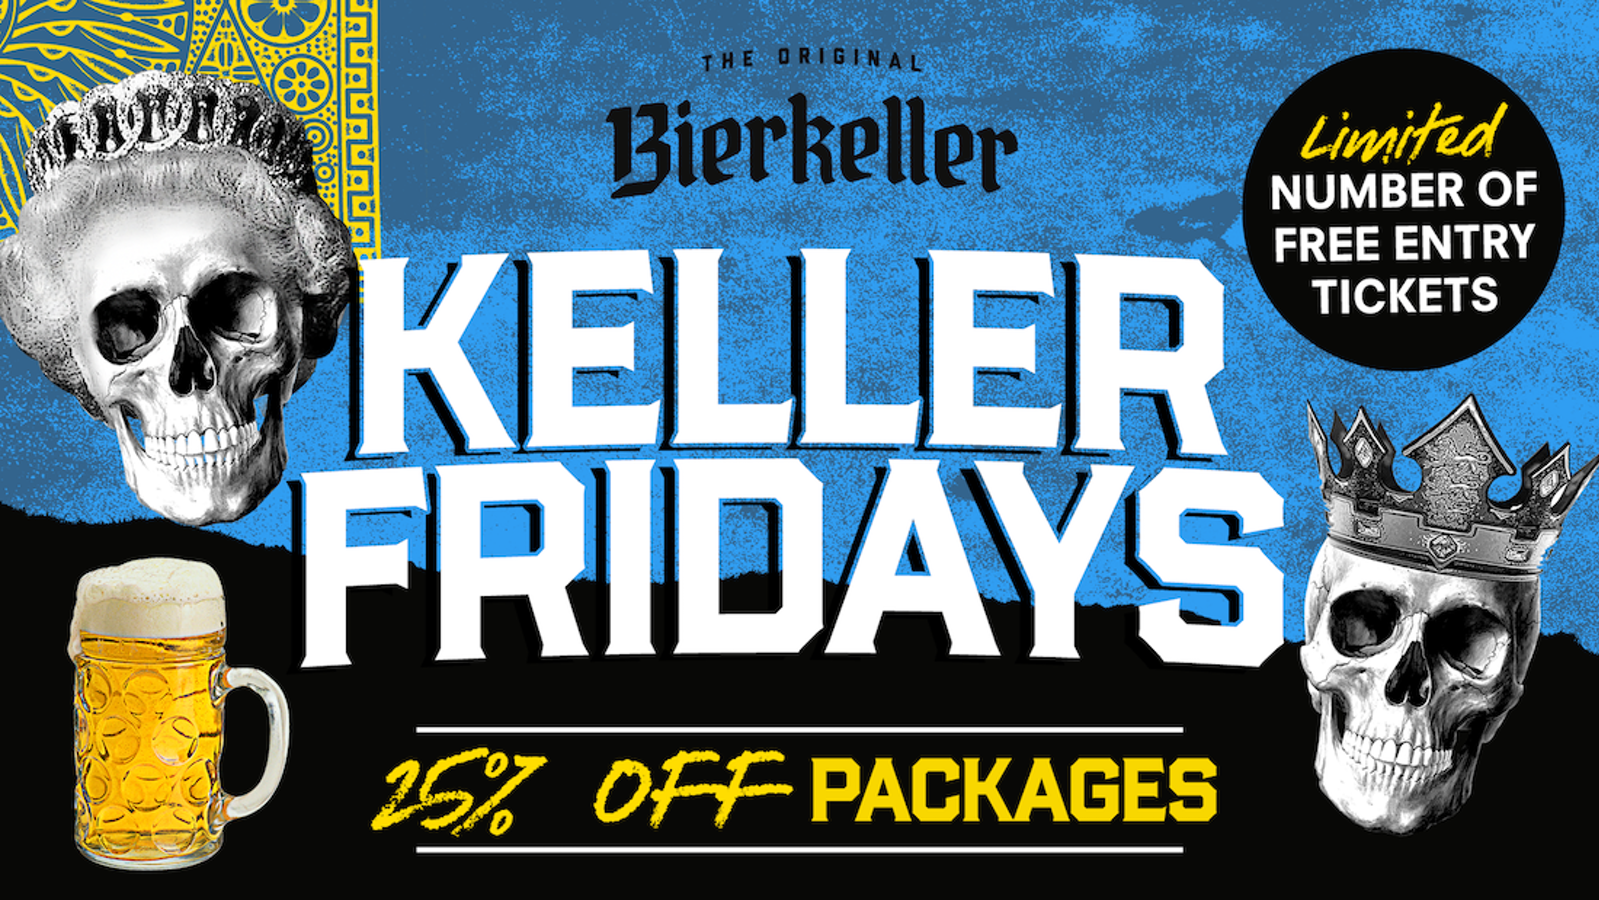 Weekend – Friday Packages